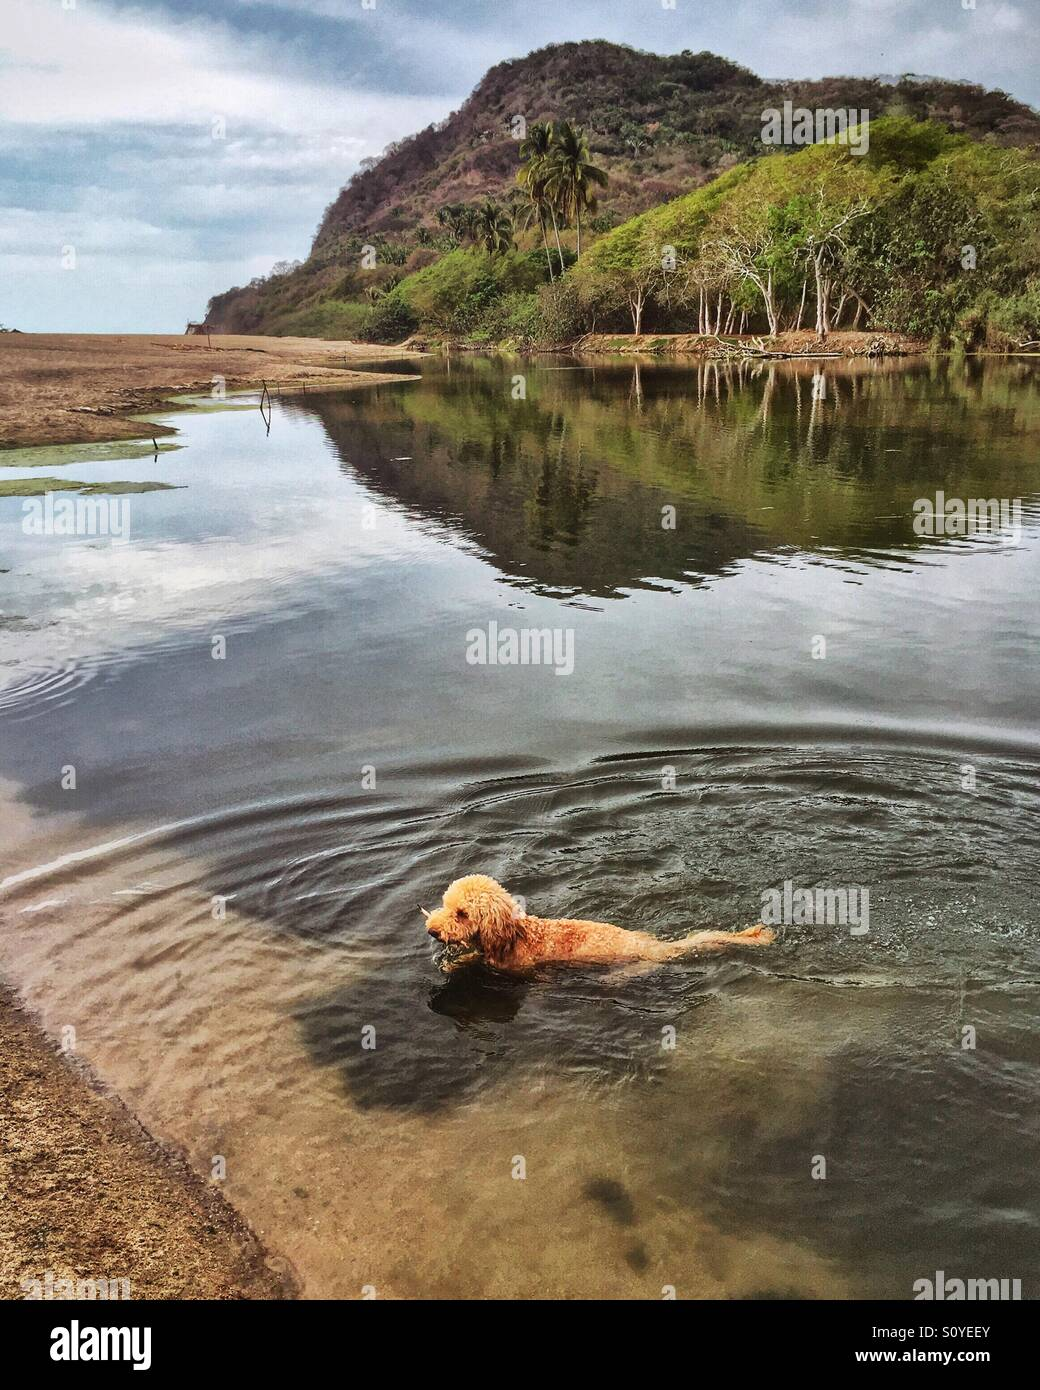 A miniature labradoodle retrieves a stick in the lagoon in Lo de Marcos, Mexico. - Stock Image